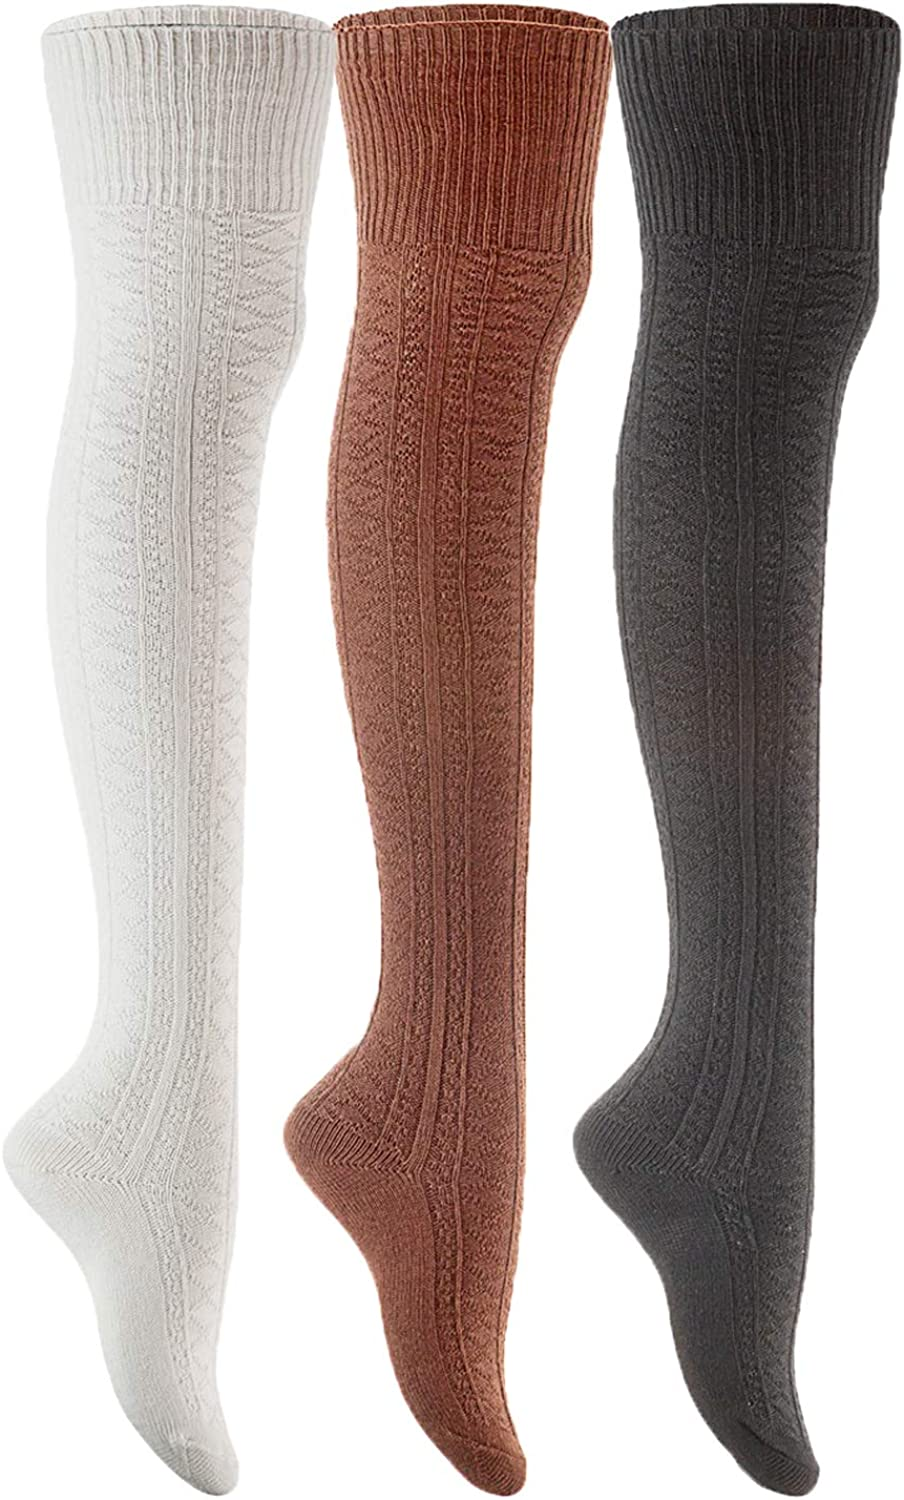 Lian LifeStyle Women's 3 Pairs Adorable Thigh High Cotton Socks Size 6-9 LLS1025